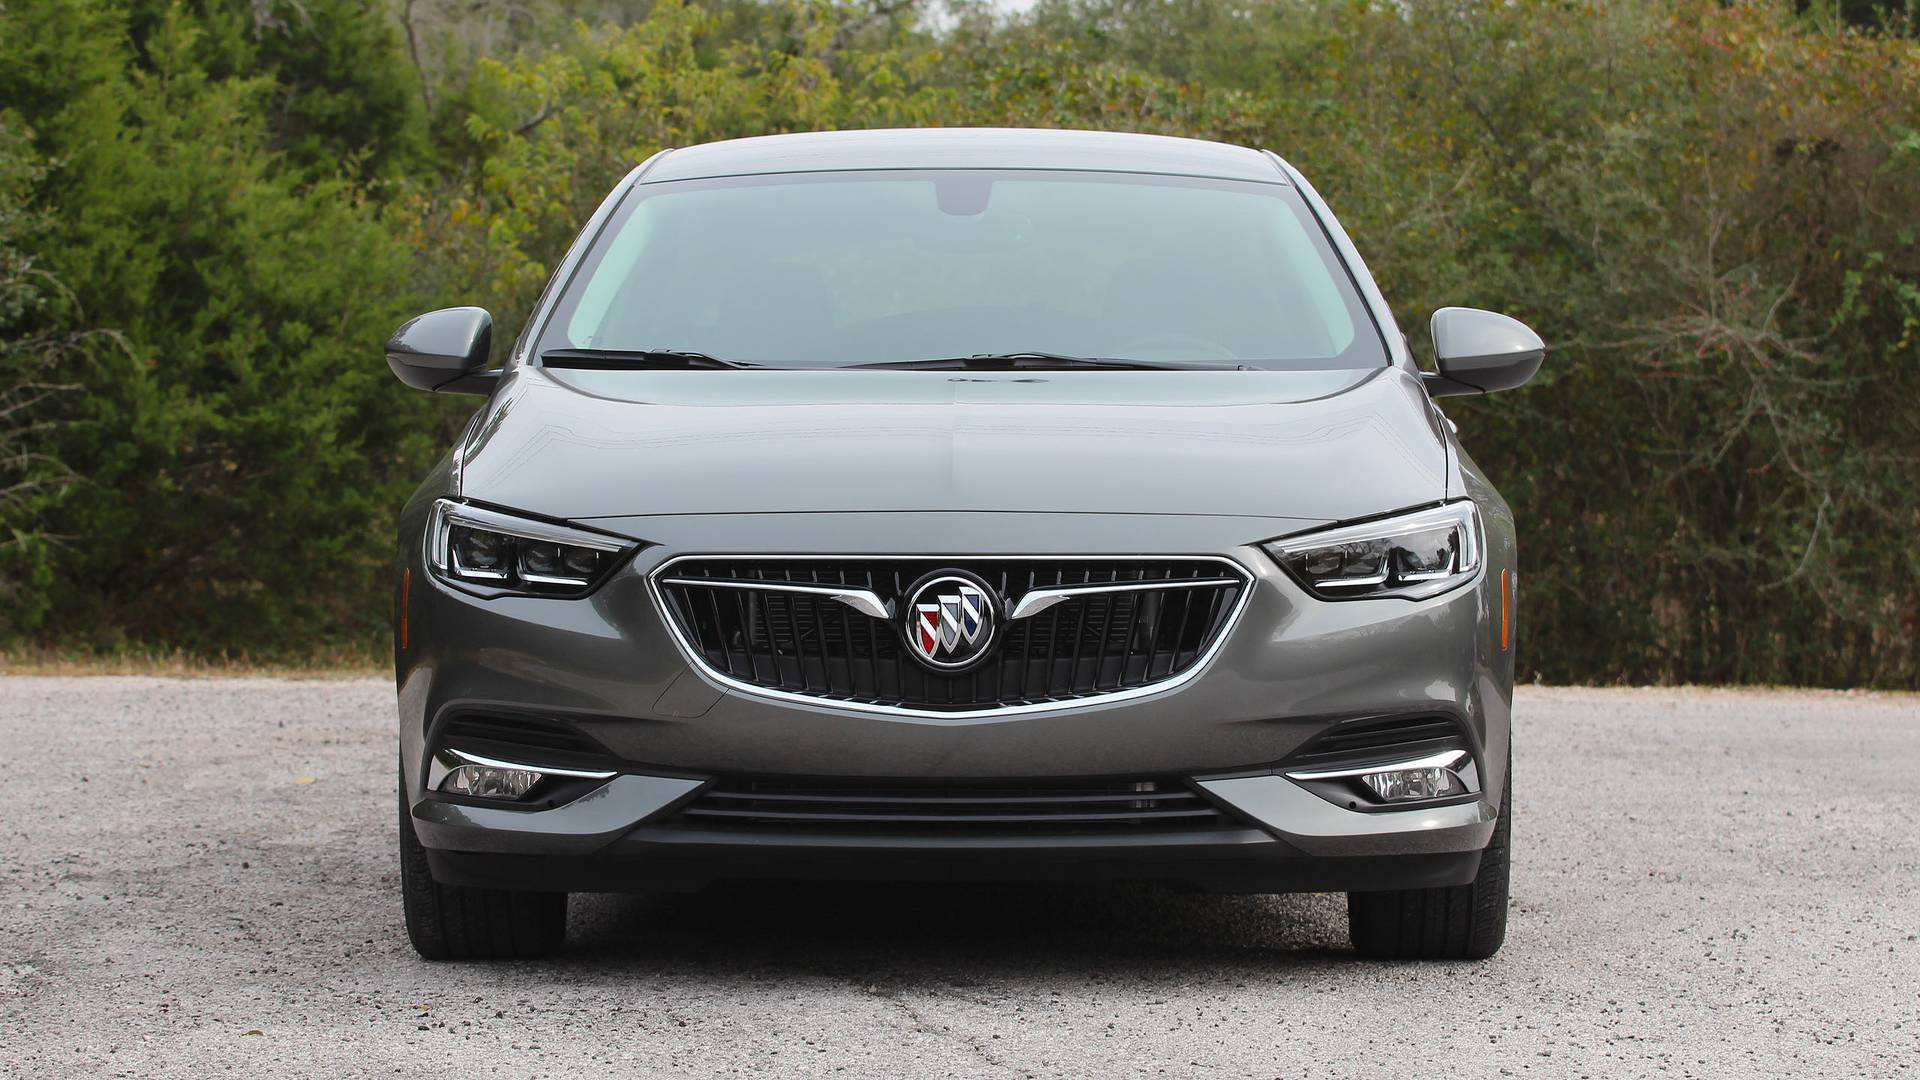 44 New 2019 Buick Regal Avenir First Drive New Concept with 2019 Buick Regal Avenir First Drive